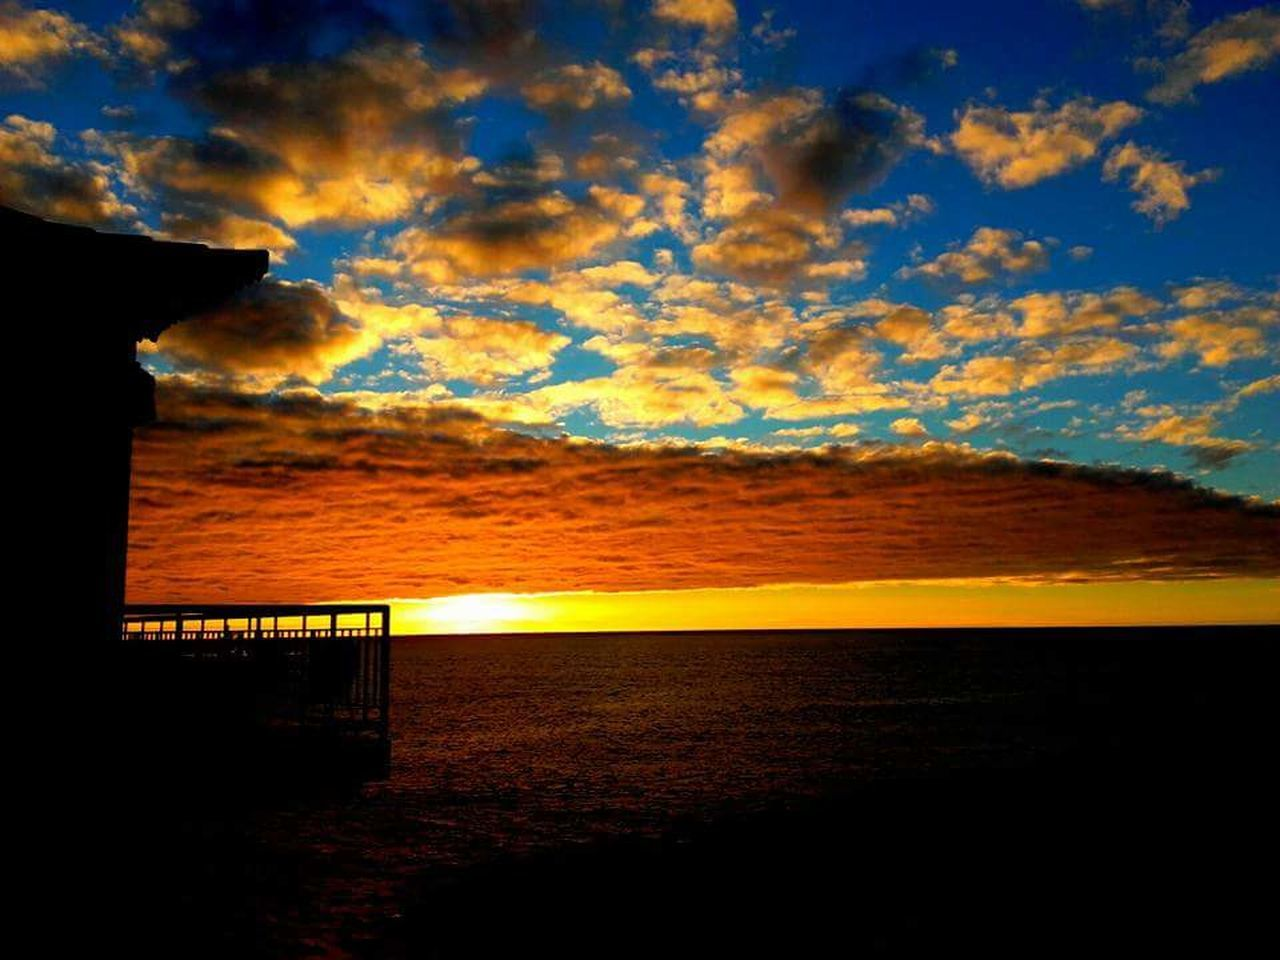 sea, sunset, scenics, cloud - sky, nature, sky, water, tranquility, outdoors, no people, beach, horizon over water, beauty in nature, mountain, day